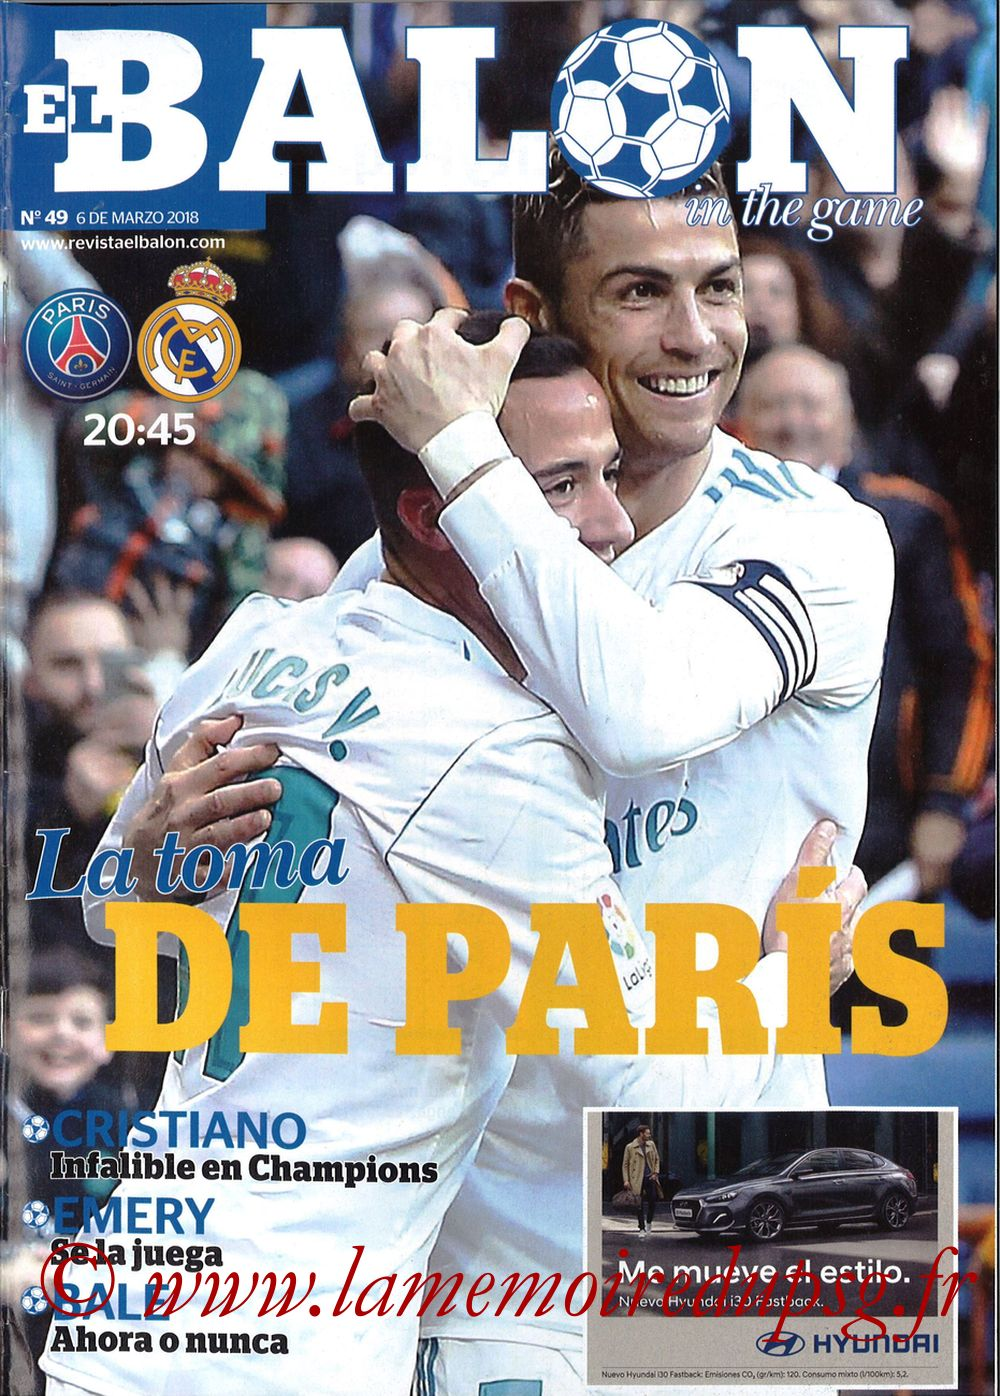 2018-03-06  PSG-Real Madrid (8ème Retourr C1, El Balon in the game N°49)